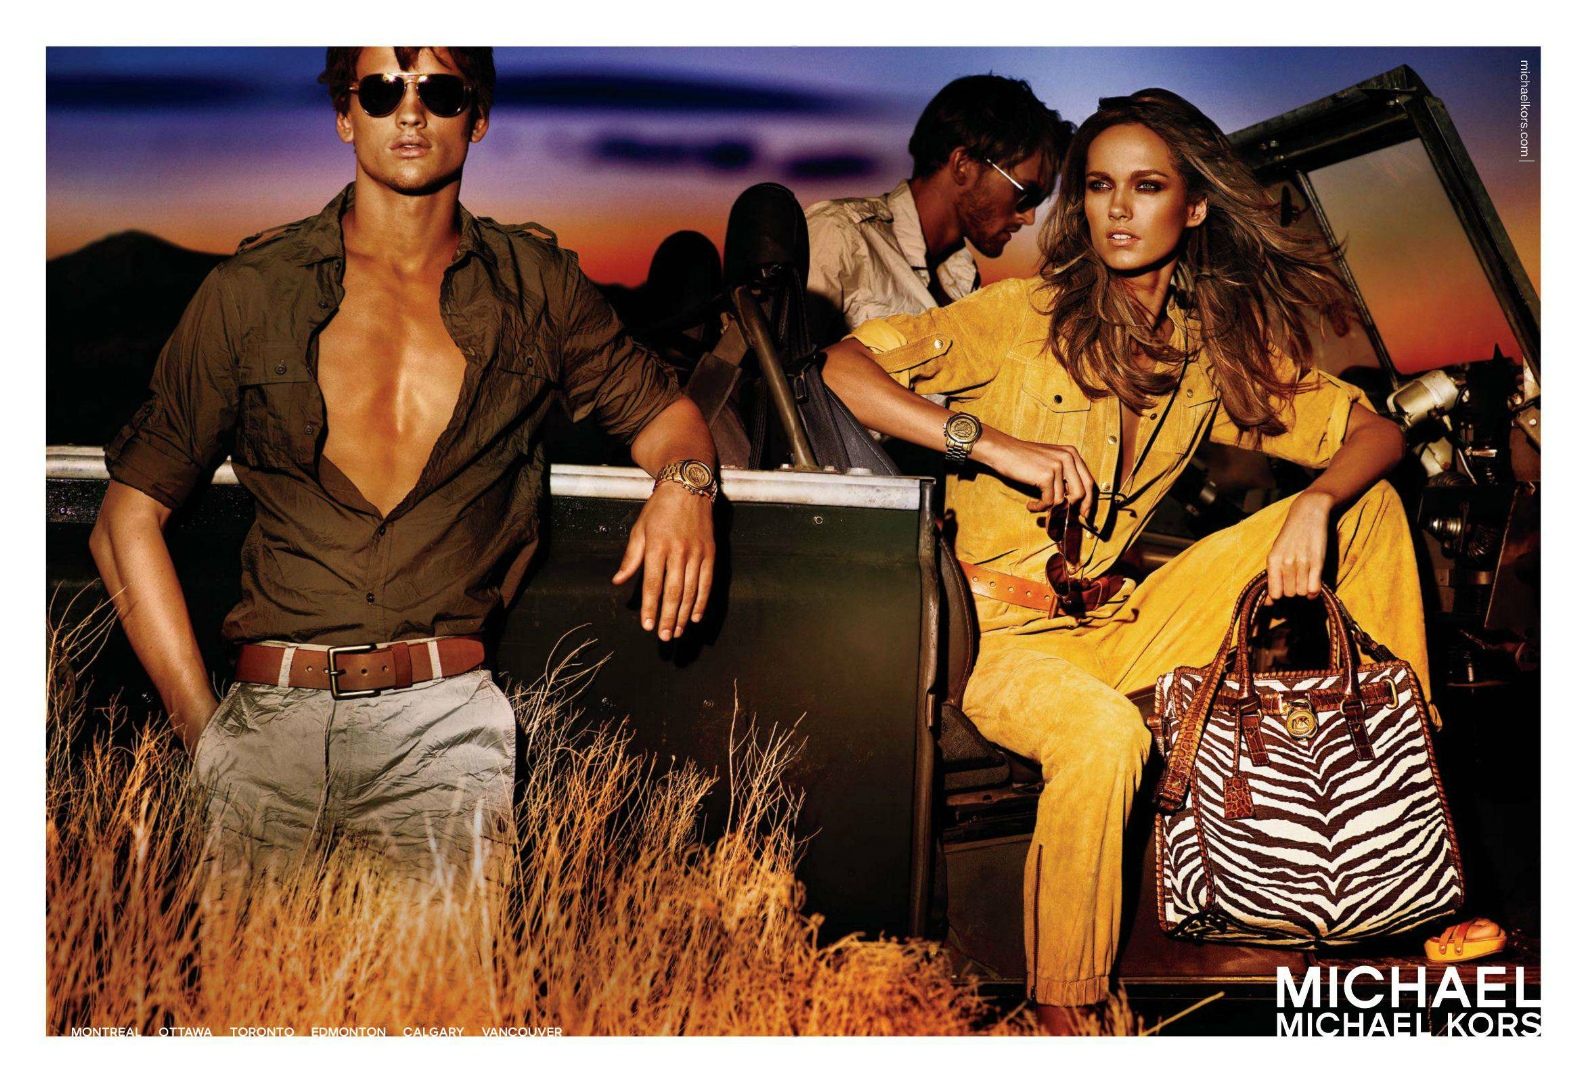 Michael Kors Spring Summer 2012- Luxury Fashion Top 10 Luxury Fashion Campaigns of 2012 Michael Kors SS 2012 with Karmen Pedaru 4